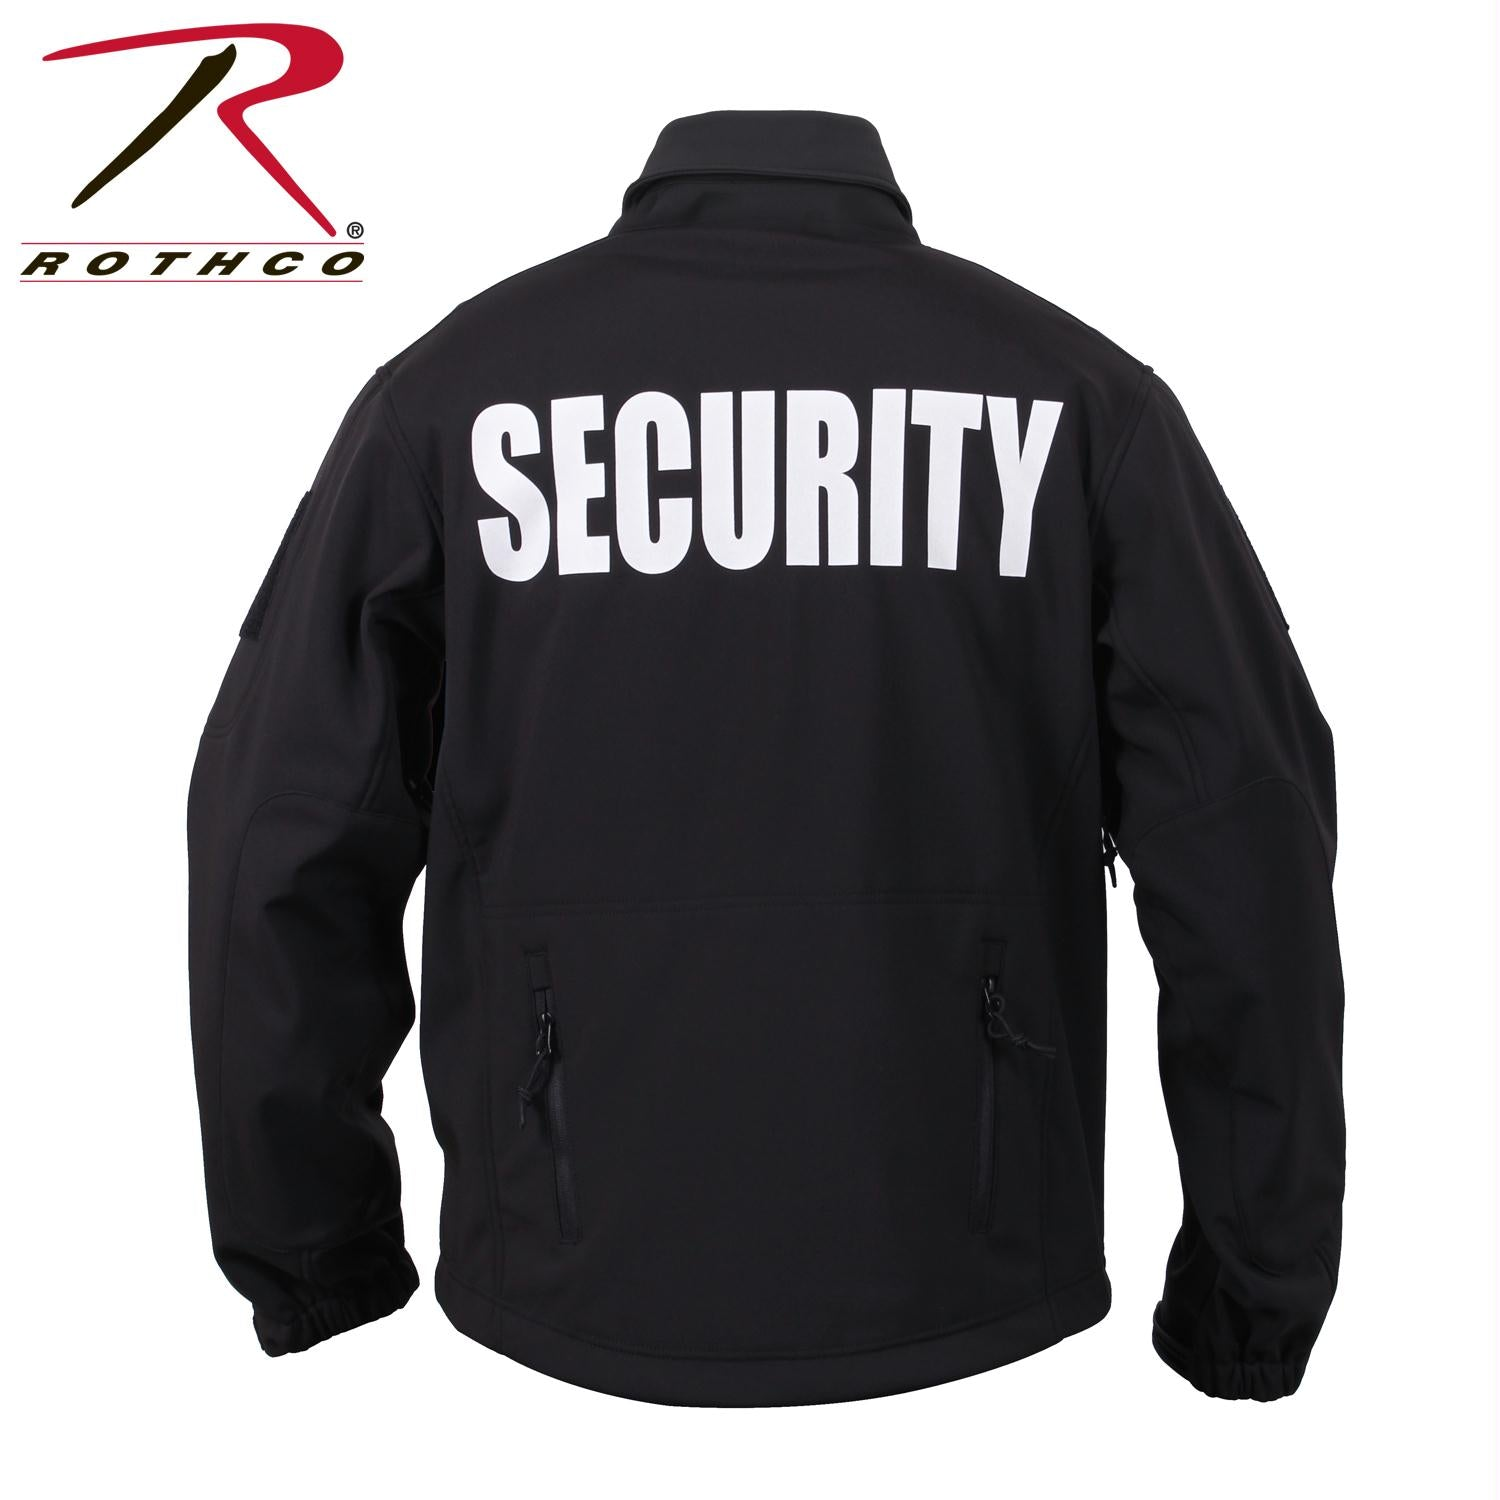 Rothco Special Ops Soft Shell Security Jacket - XL